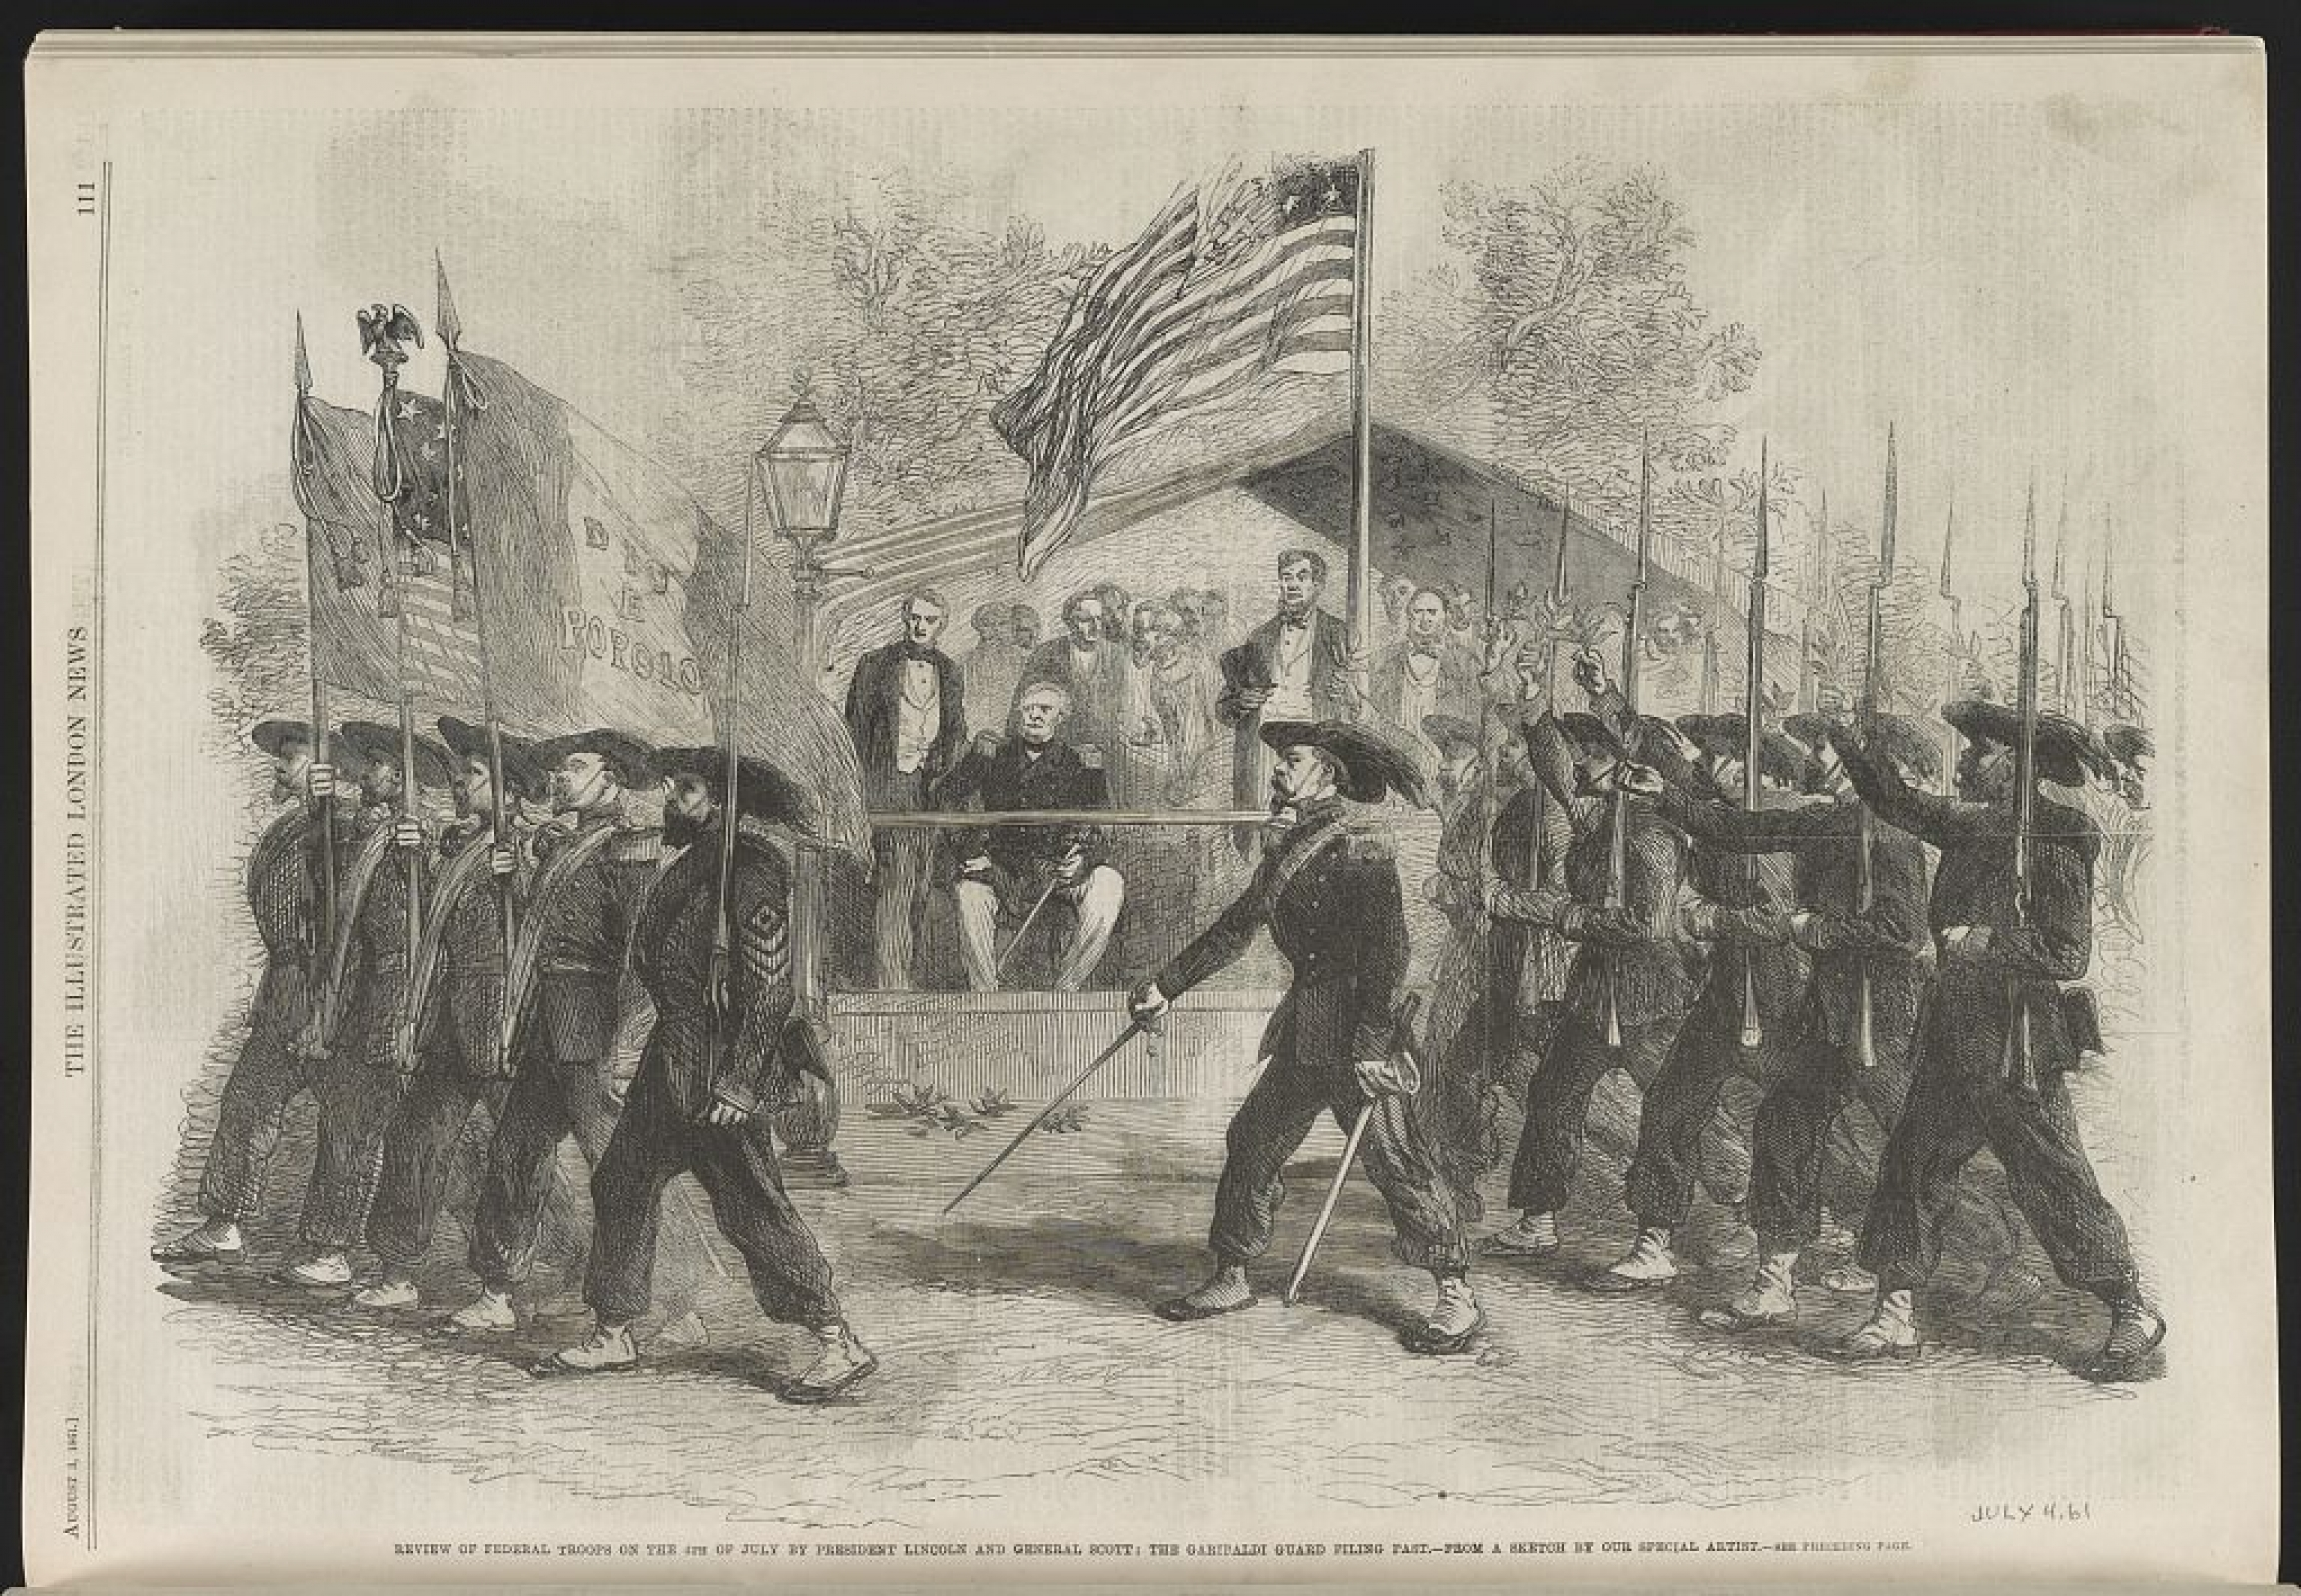 an old military parade in the US